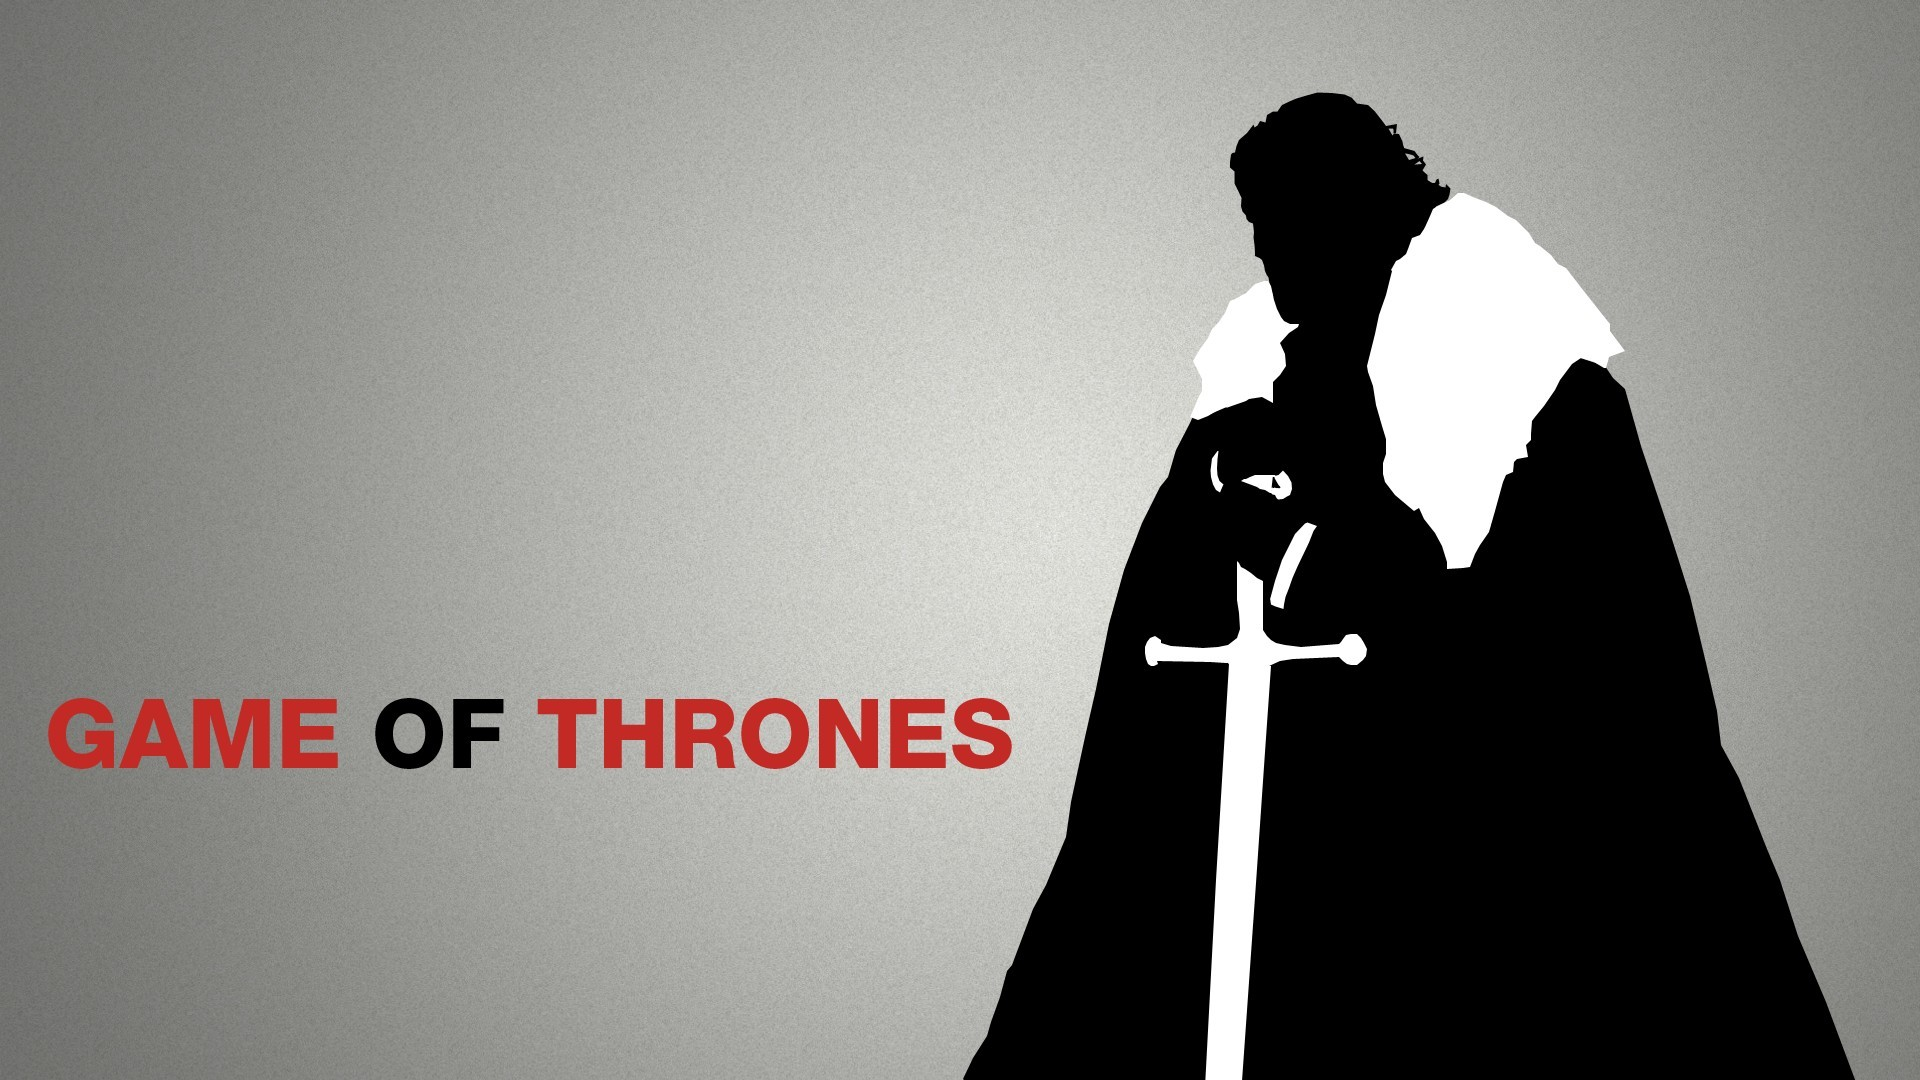 Of thrones house mad men sean bean wallpaper ...